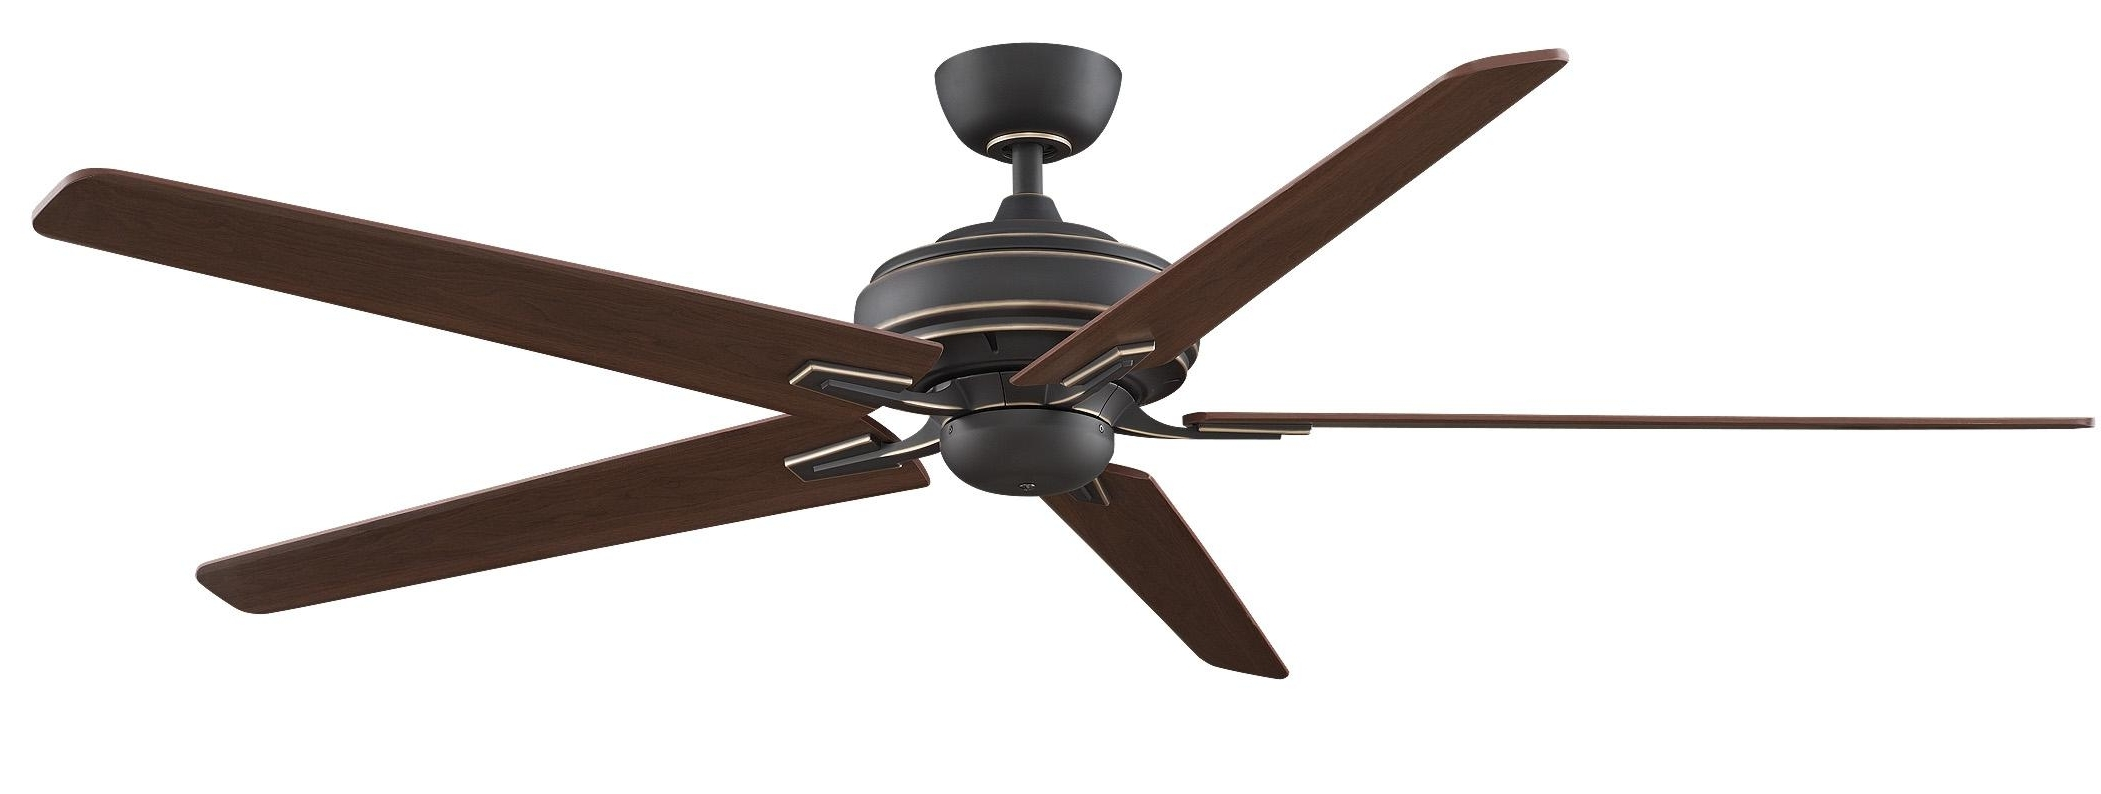 Inch Outdoor Ceiling Fan With 60 Ceiling Fan With Light Inside Most Up To Date Craftsman Outdoor Ceiling Fans (Gallery 7 of 20)